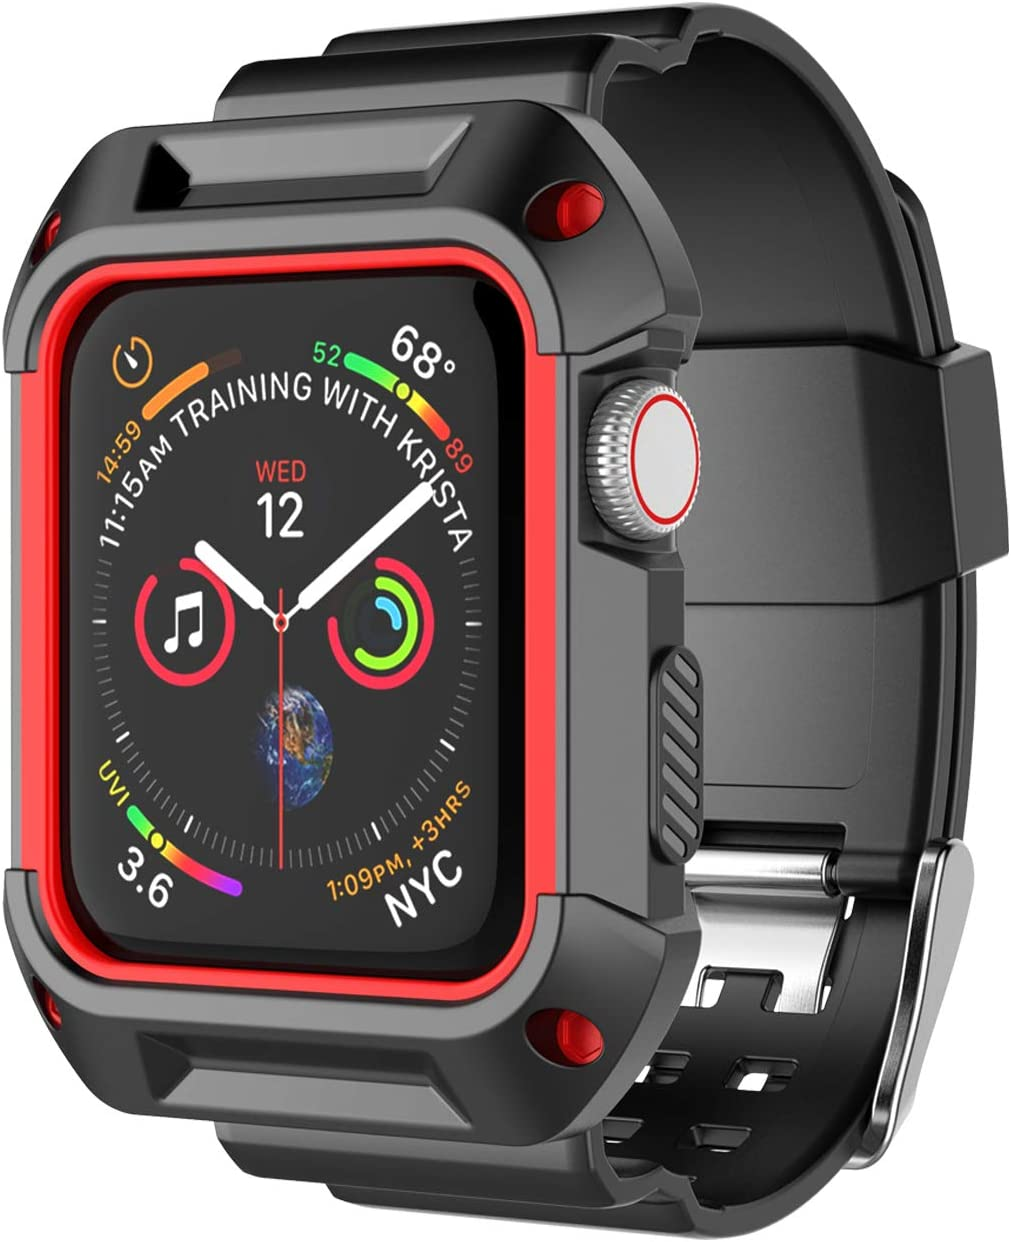 Takfox Smartwatch Band with Case for Apple Watch Band 38mm, Silicone Sport Protective Bumper Case Breathable Strap Bands Replacement Apple Watch Band for 38mm iWatch Series 3 Series 2 Series 1-Red